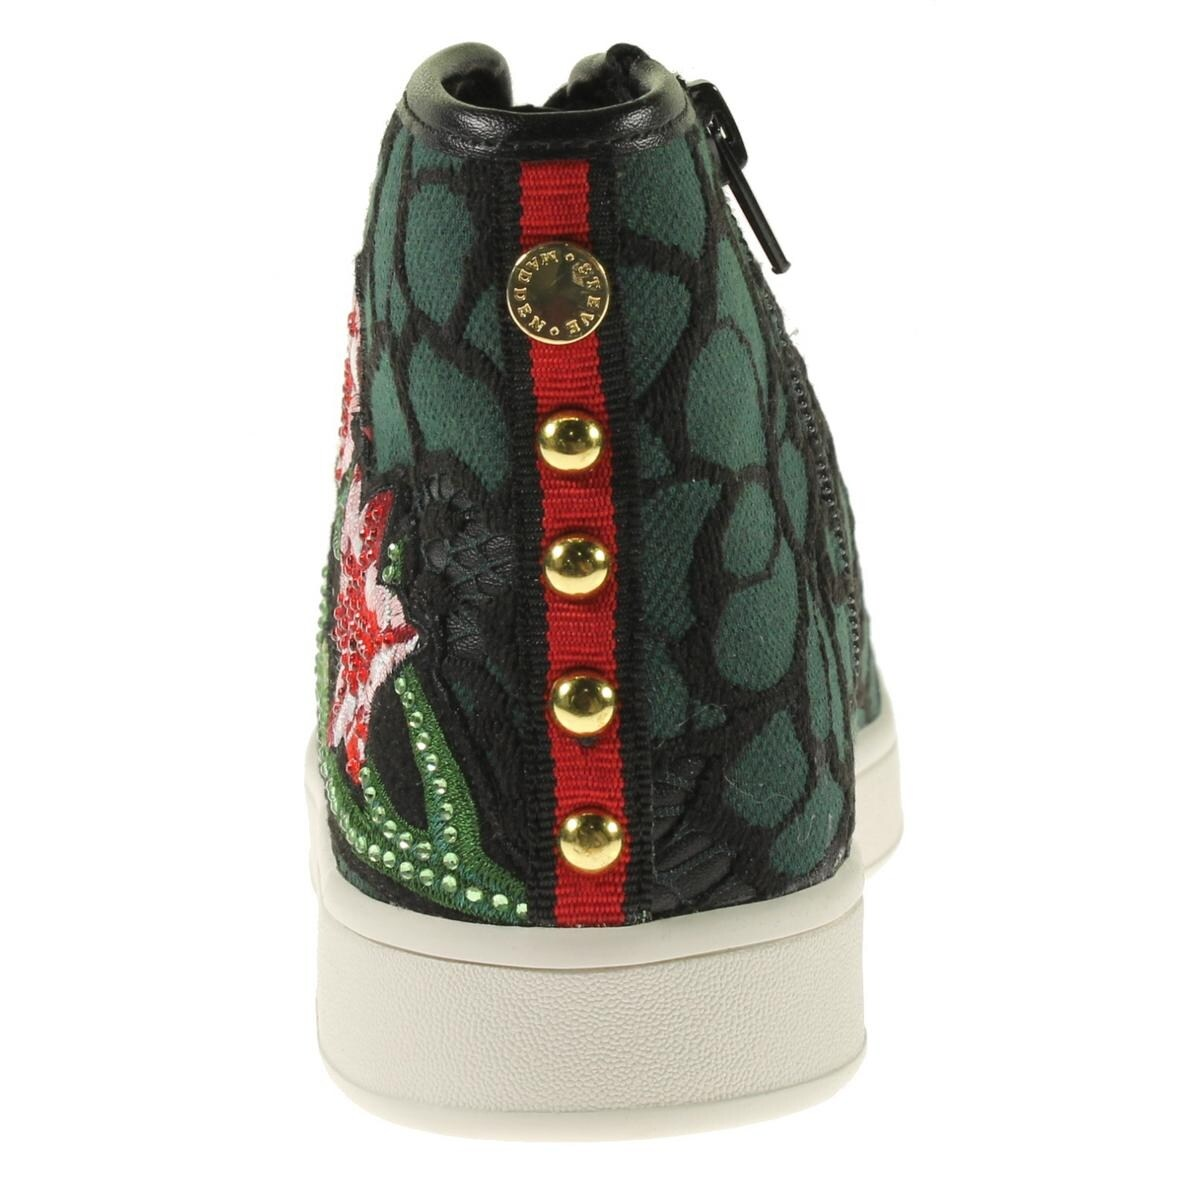 a99e0e16de5 Shop Steve Madden Womens Allie Fashion Sneakers Faux Leather Embroidered -  Free Shipping On Orders Over  45 - Overstock.com - 20199730